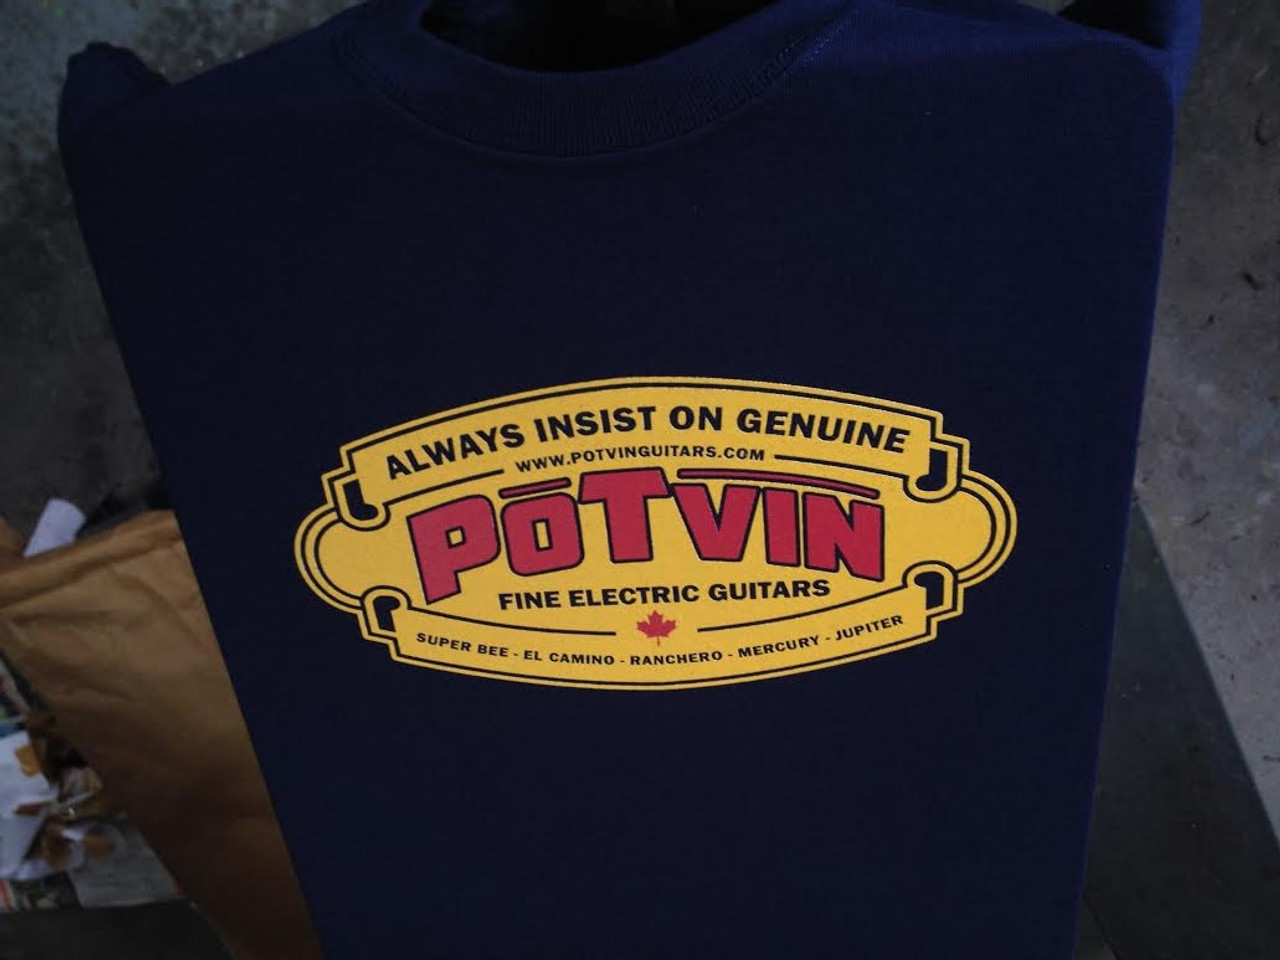 Potvin Guitars t-shirt with vintage Potvin logo